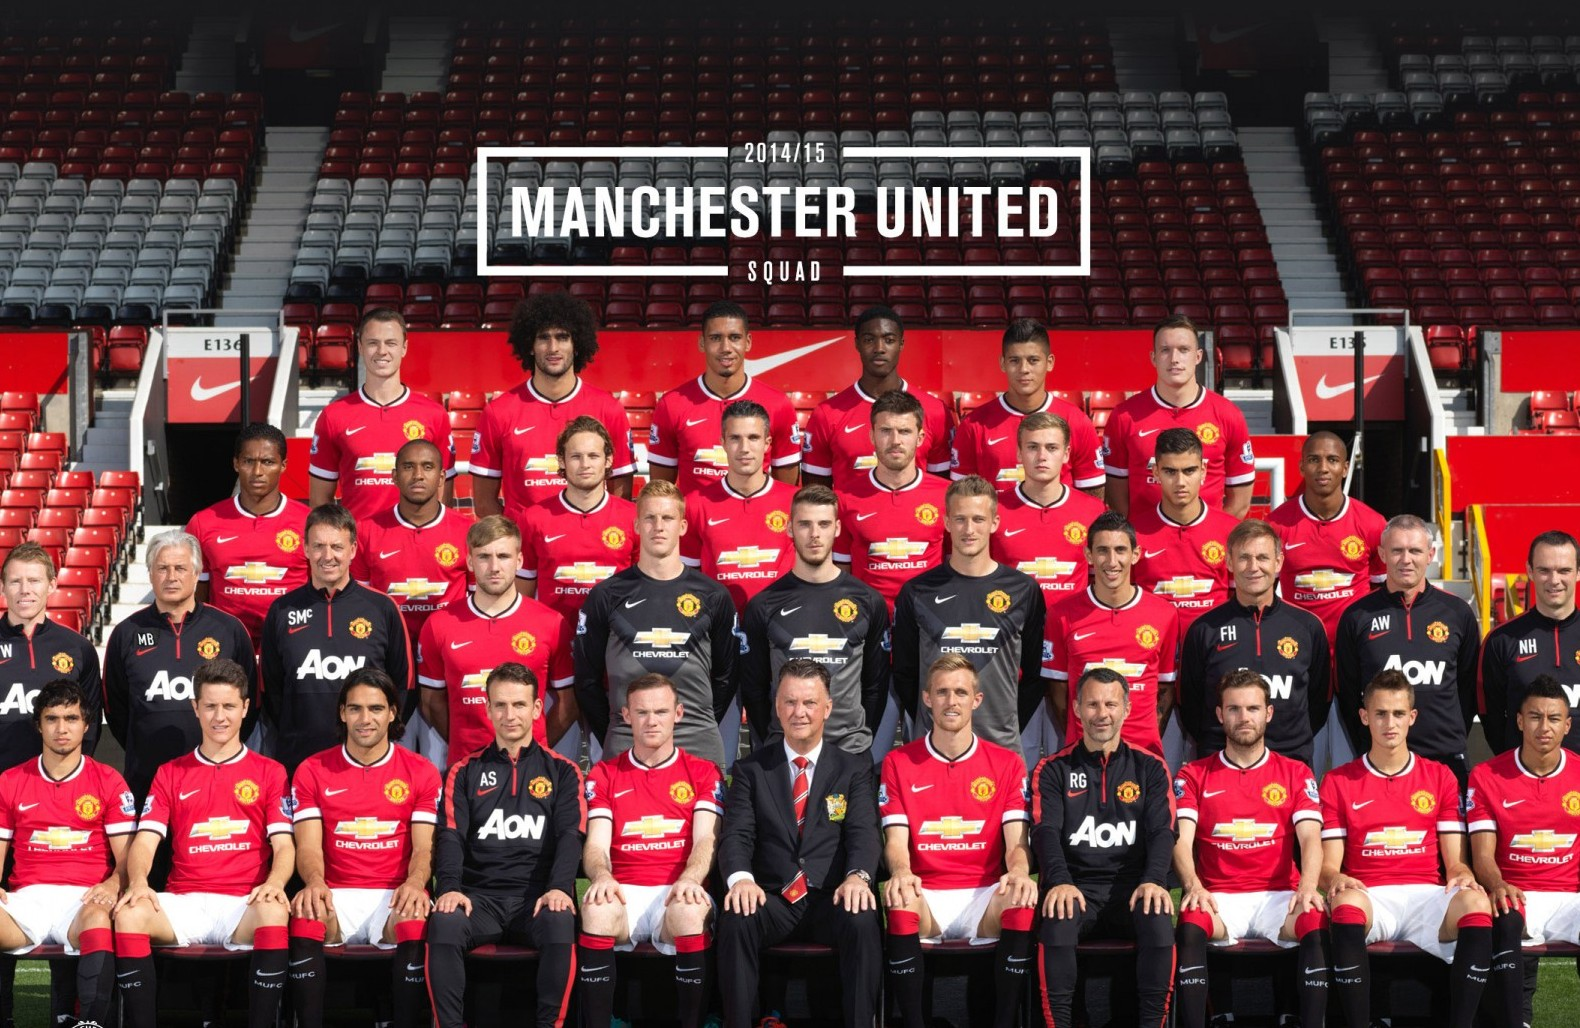 Manchester United Football Club Group Latest HD Wallpaper 2015 | Sports HD Wallpapers